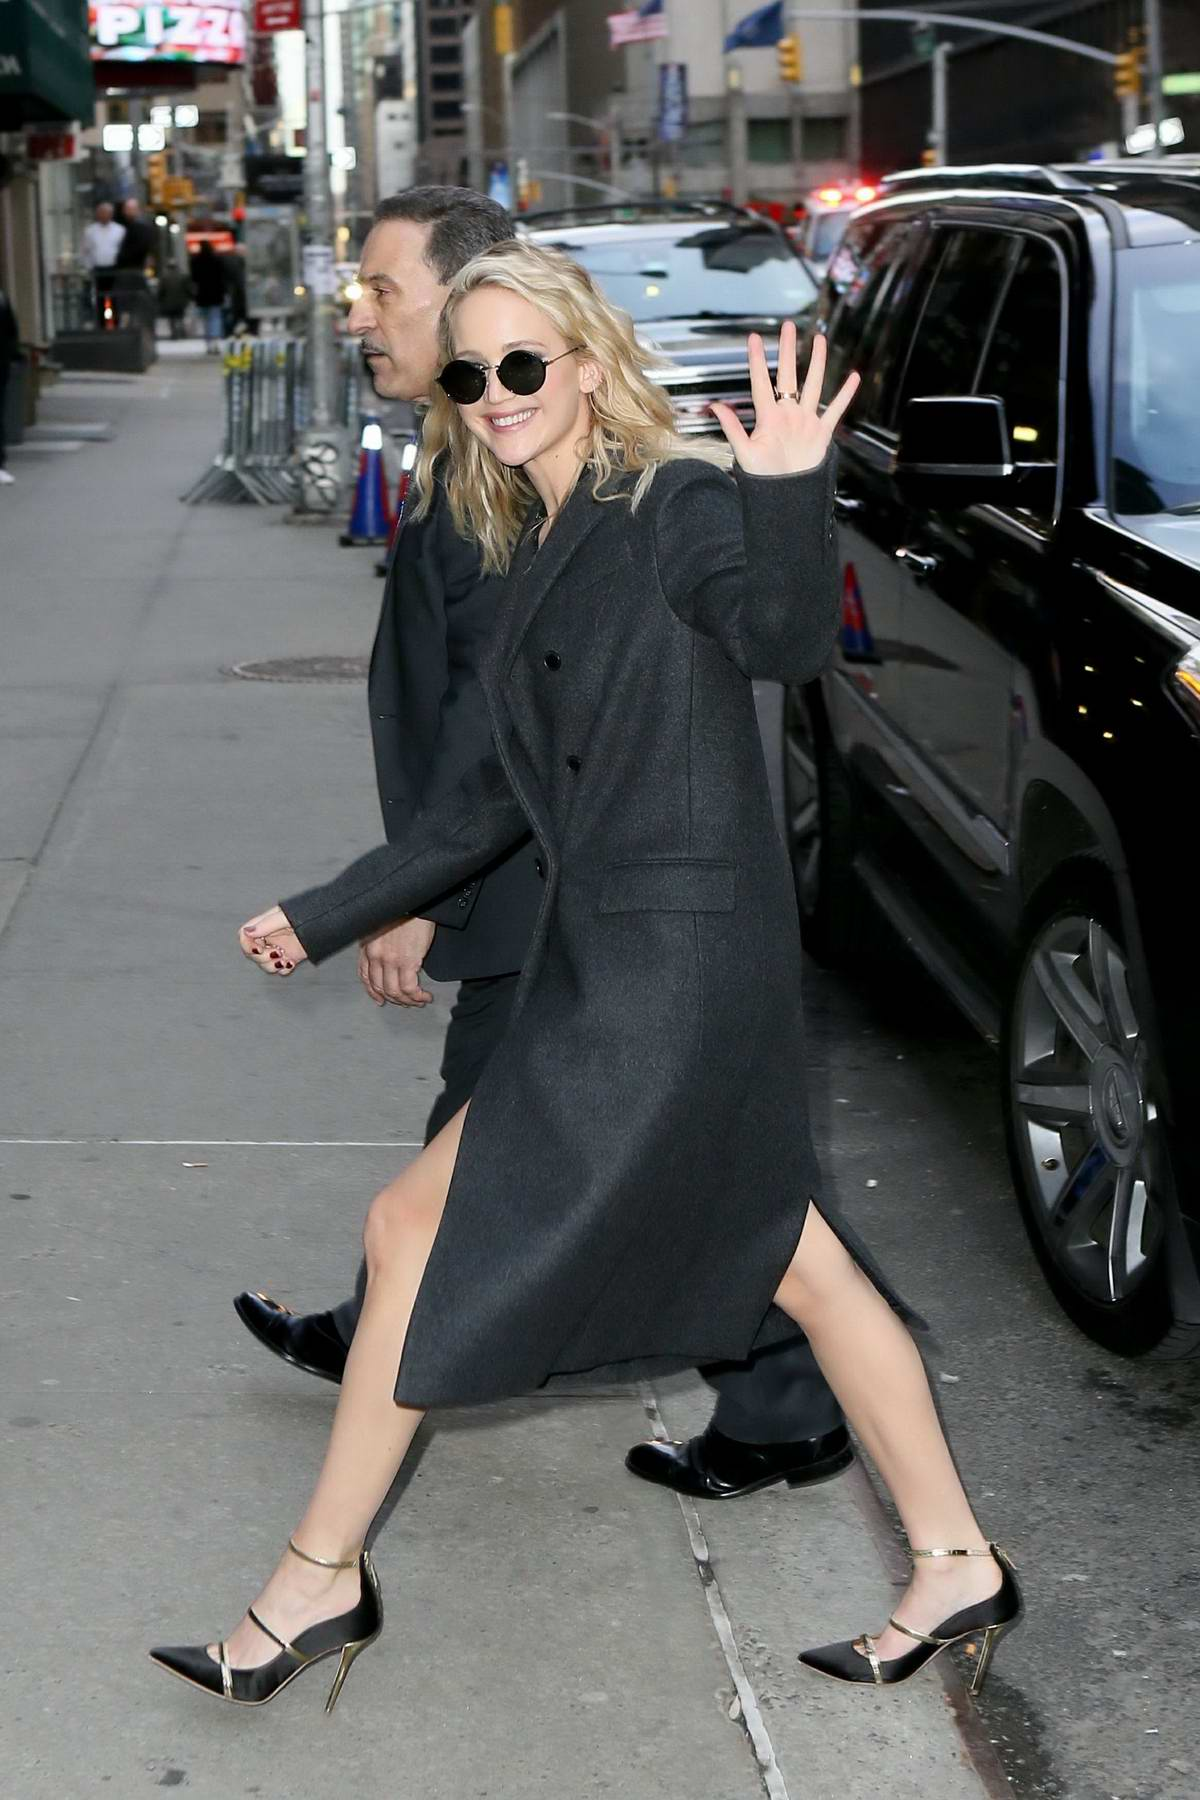 Jennifer Lawrence arriving for an appearance on 'The Late Show with Stephen Colbert' in New York City